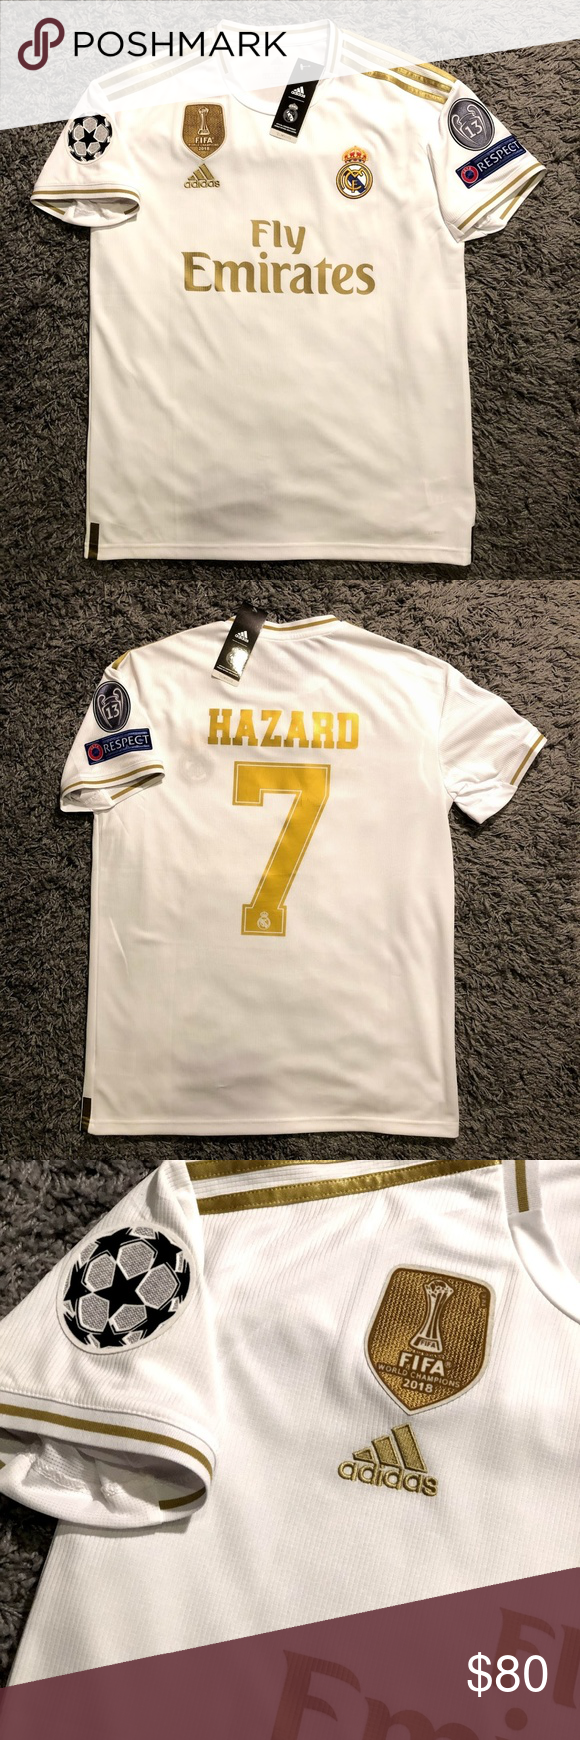 Eden Hazard Real Madrid Champions League Jersey Home Jersey For Real Madrid 2019 2020 Ucl Season This Is Adidas Shirt Tee Shirts Real Madrid Champions League